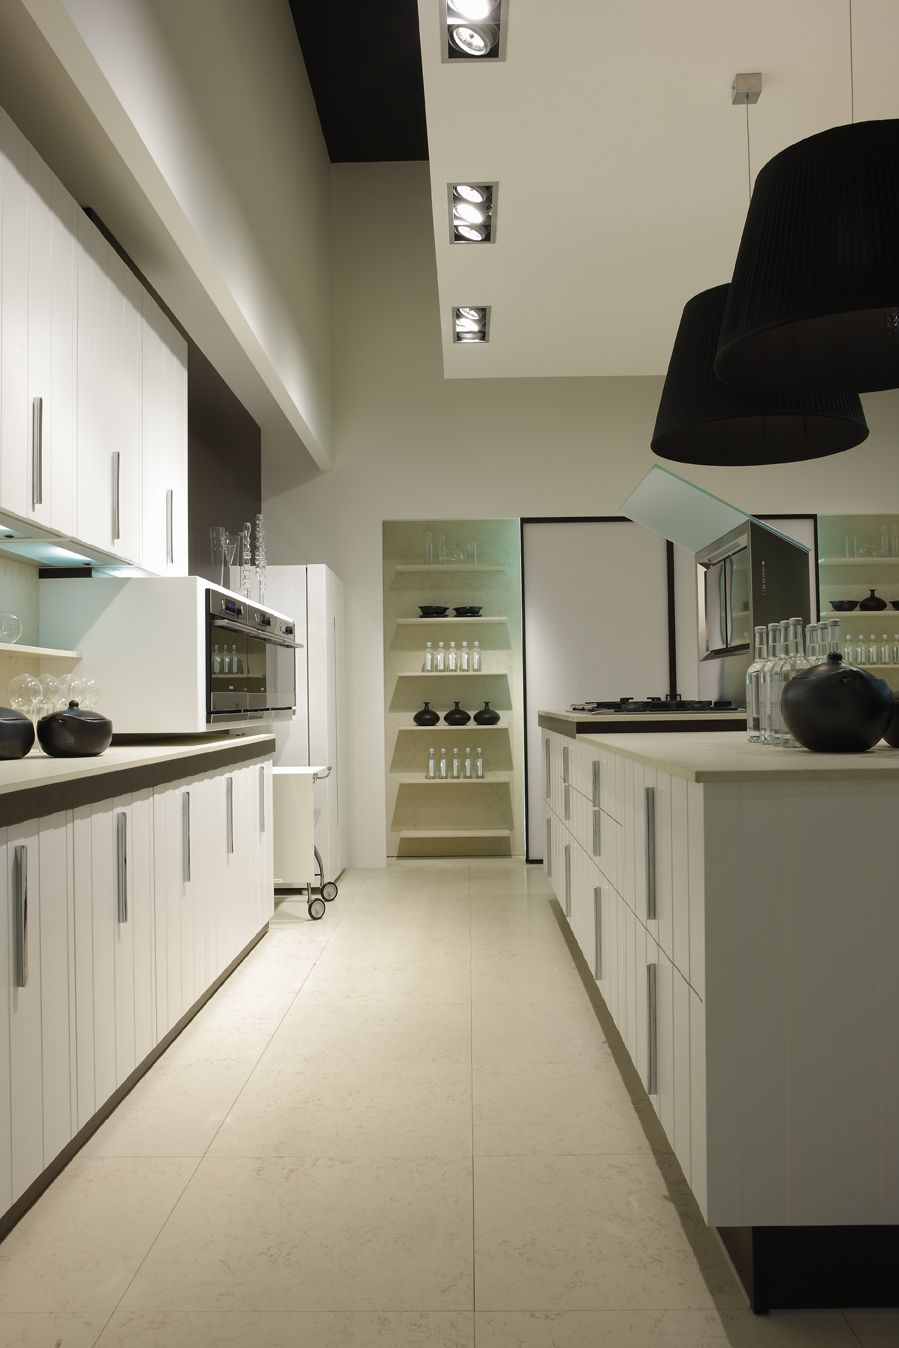 I Am A Big Fan Of Directional Spotlightsthis Kitchen Is Amazing Best Latest Kitchen Designs Uk Review